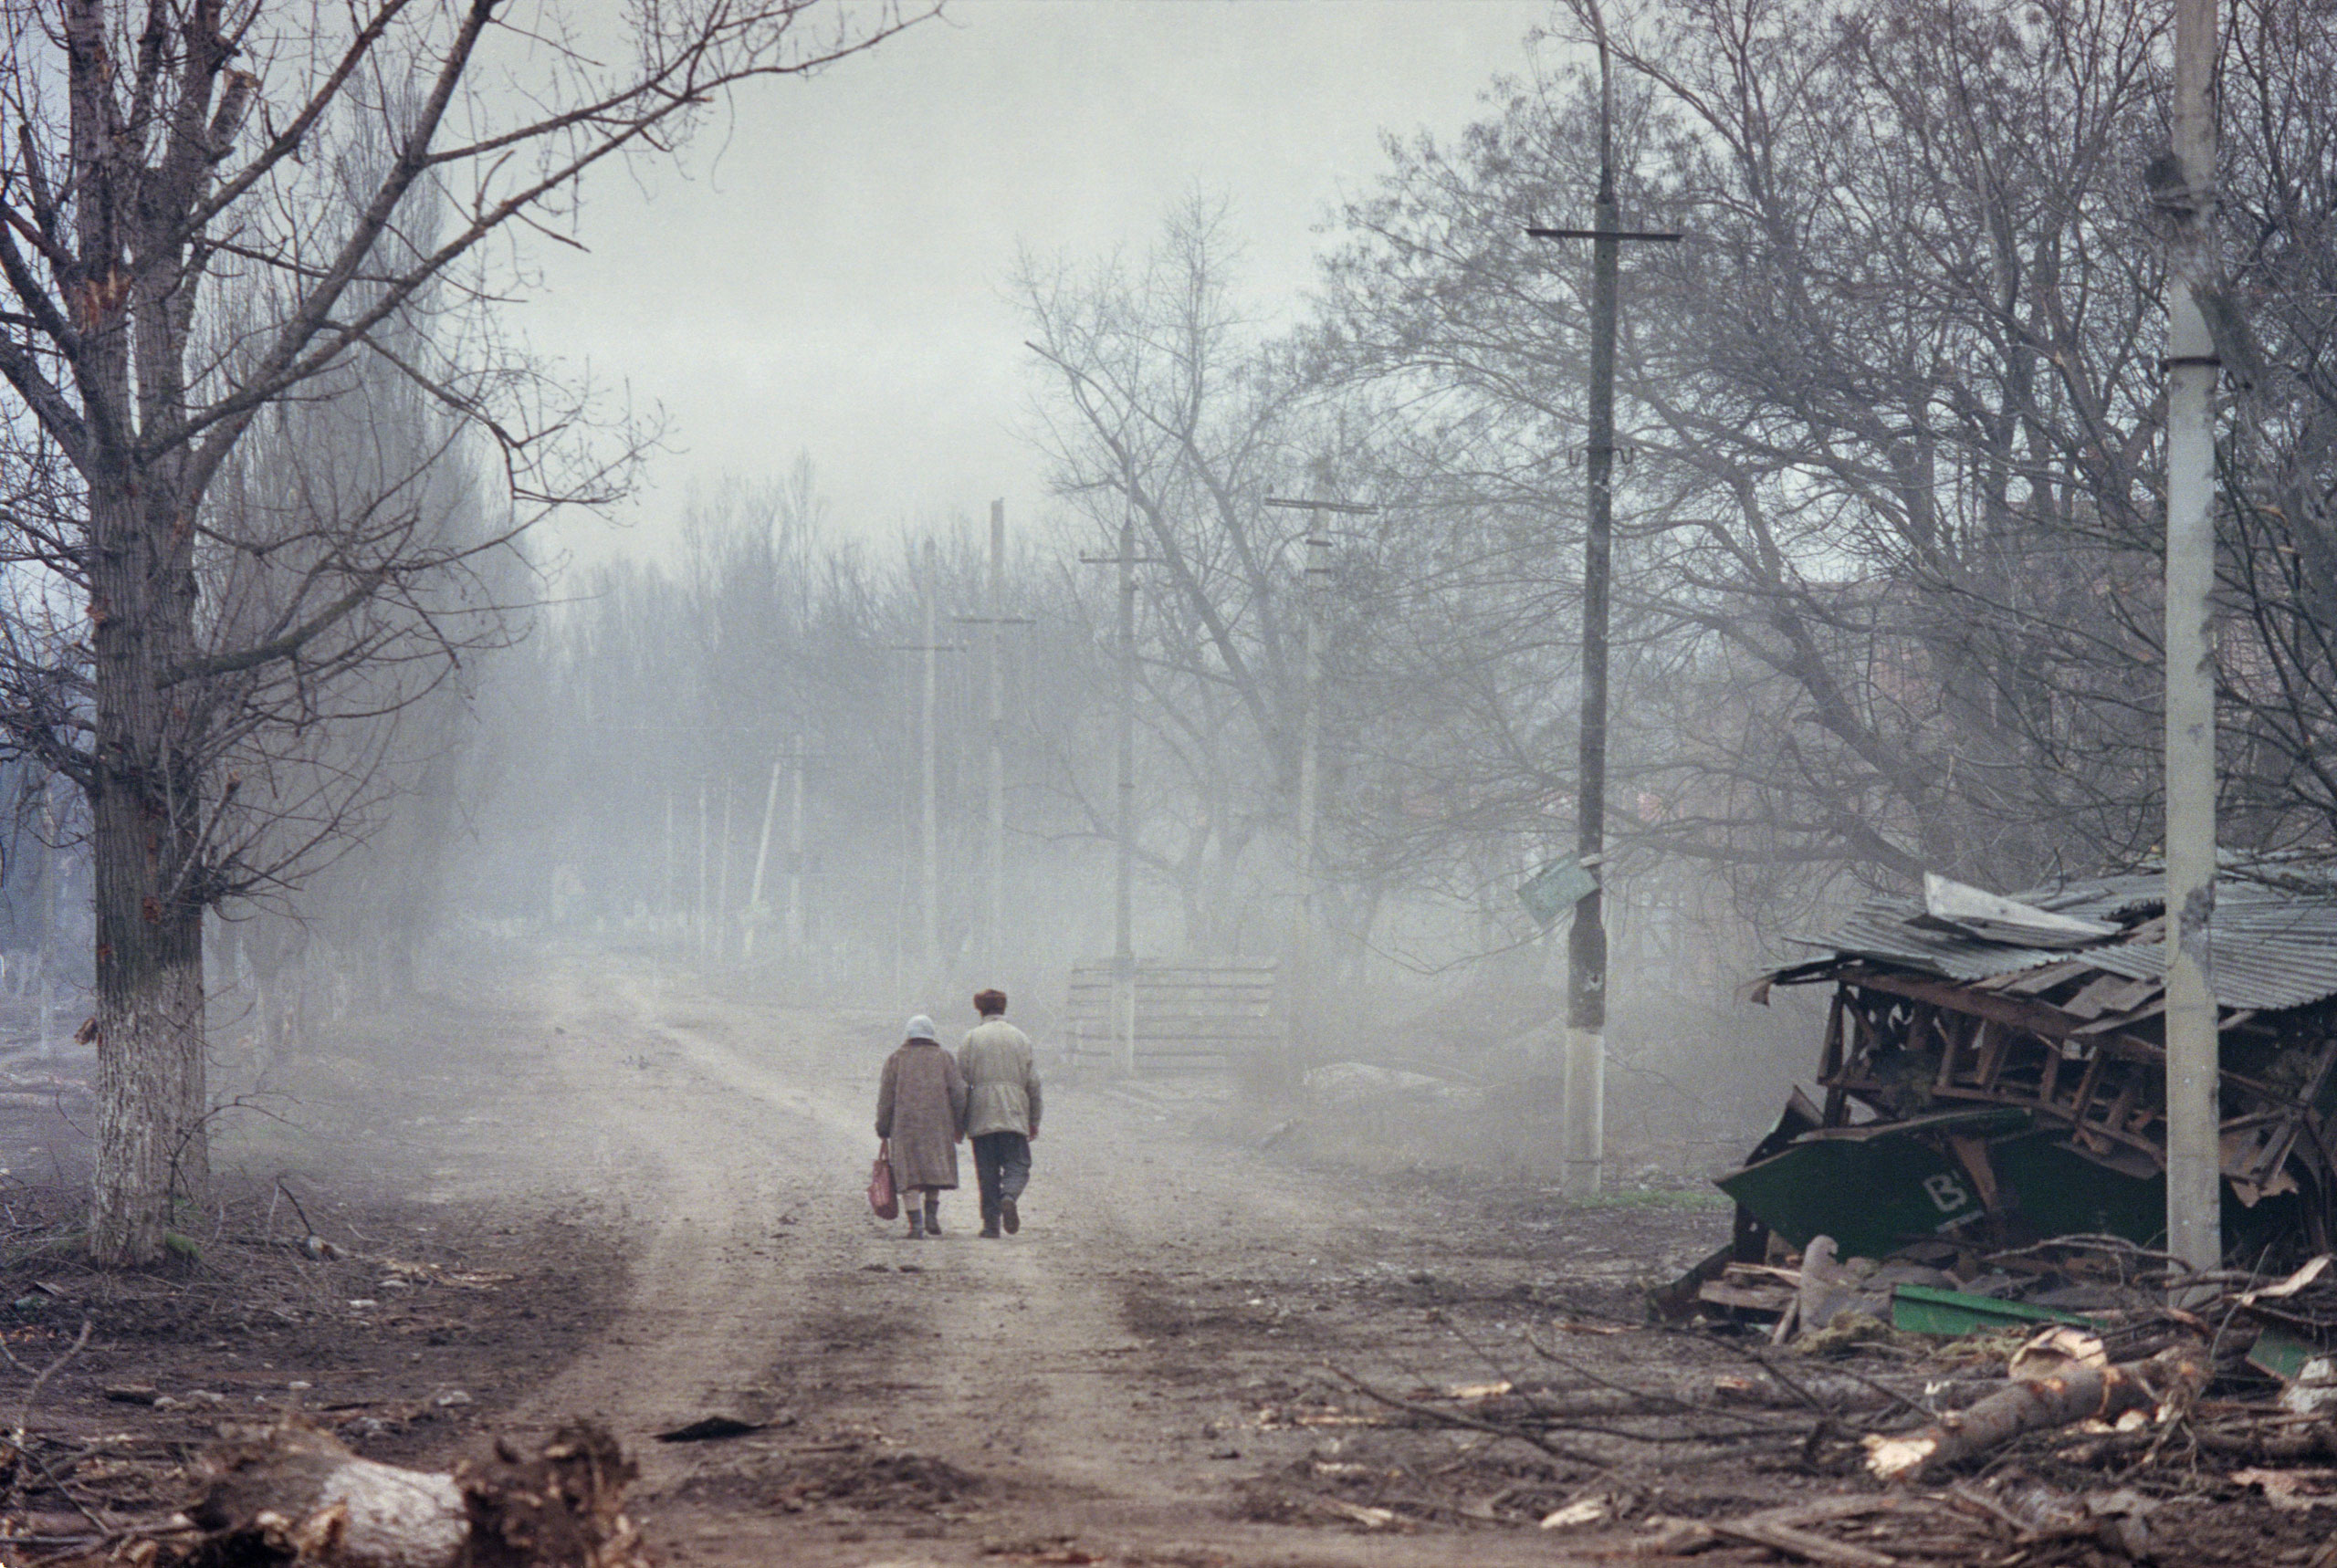 A couple walks through  the ruins of Grozny, the capital of Chechnya, which was flattened by Russian air strikes in the second Chechen war, March 2002.